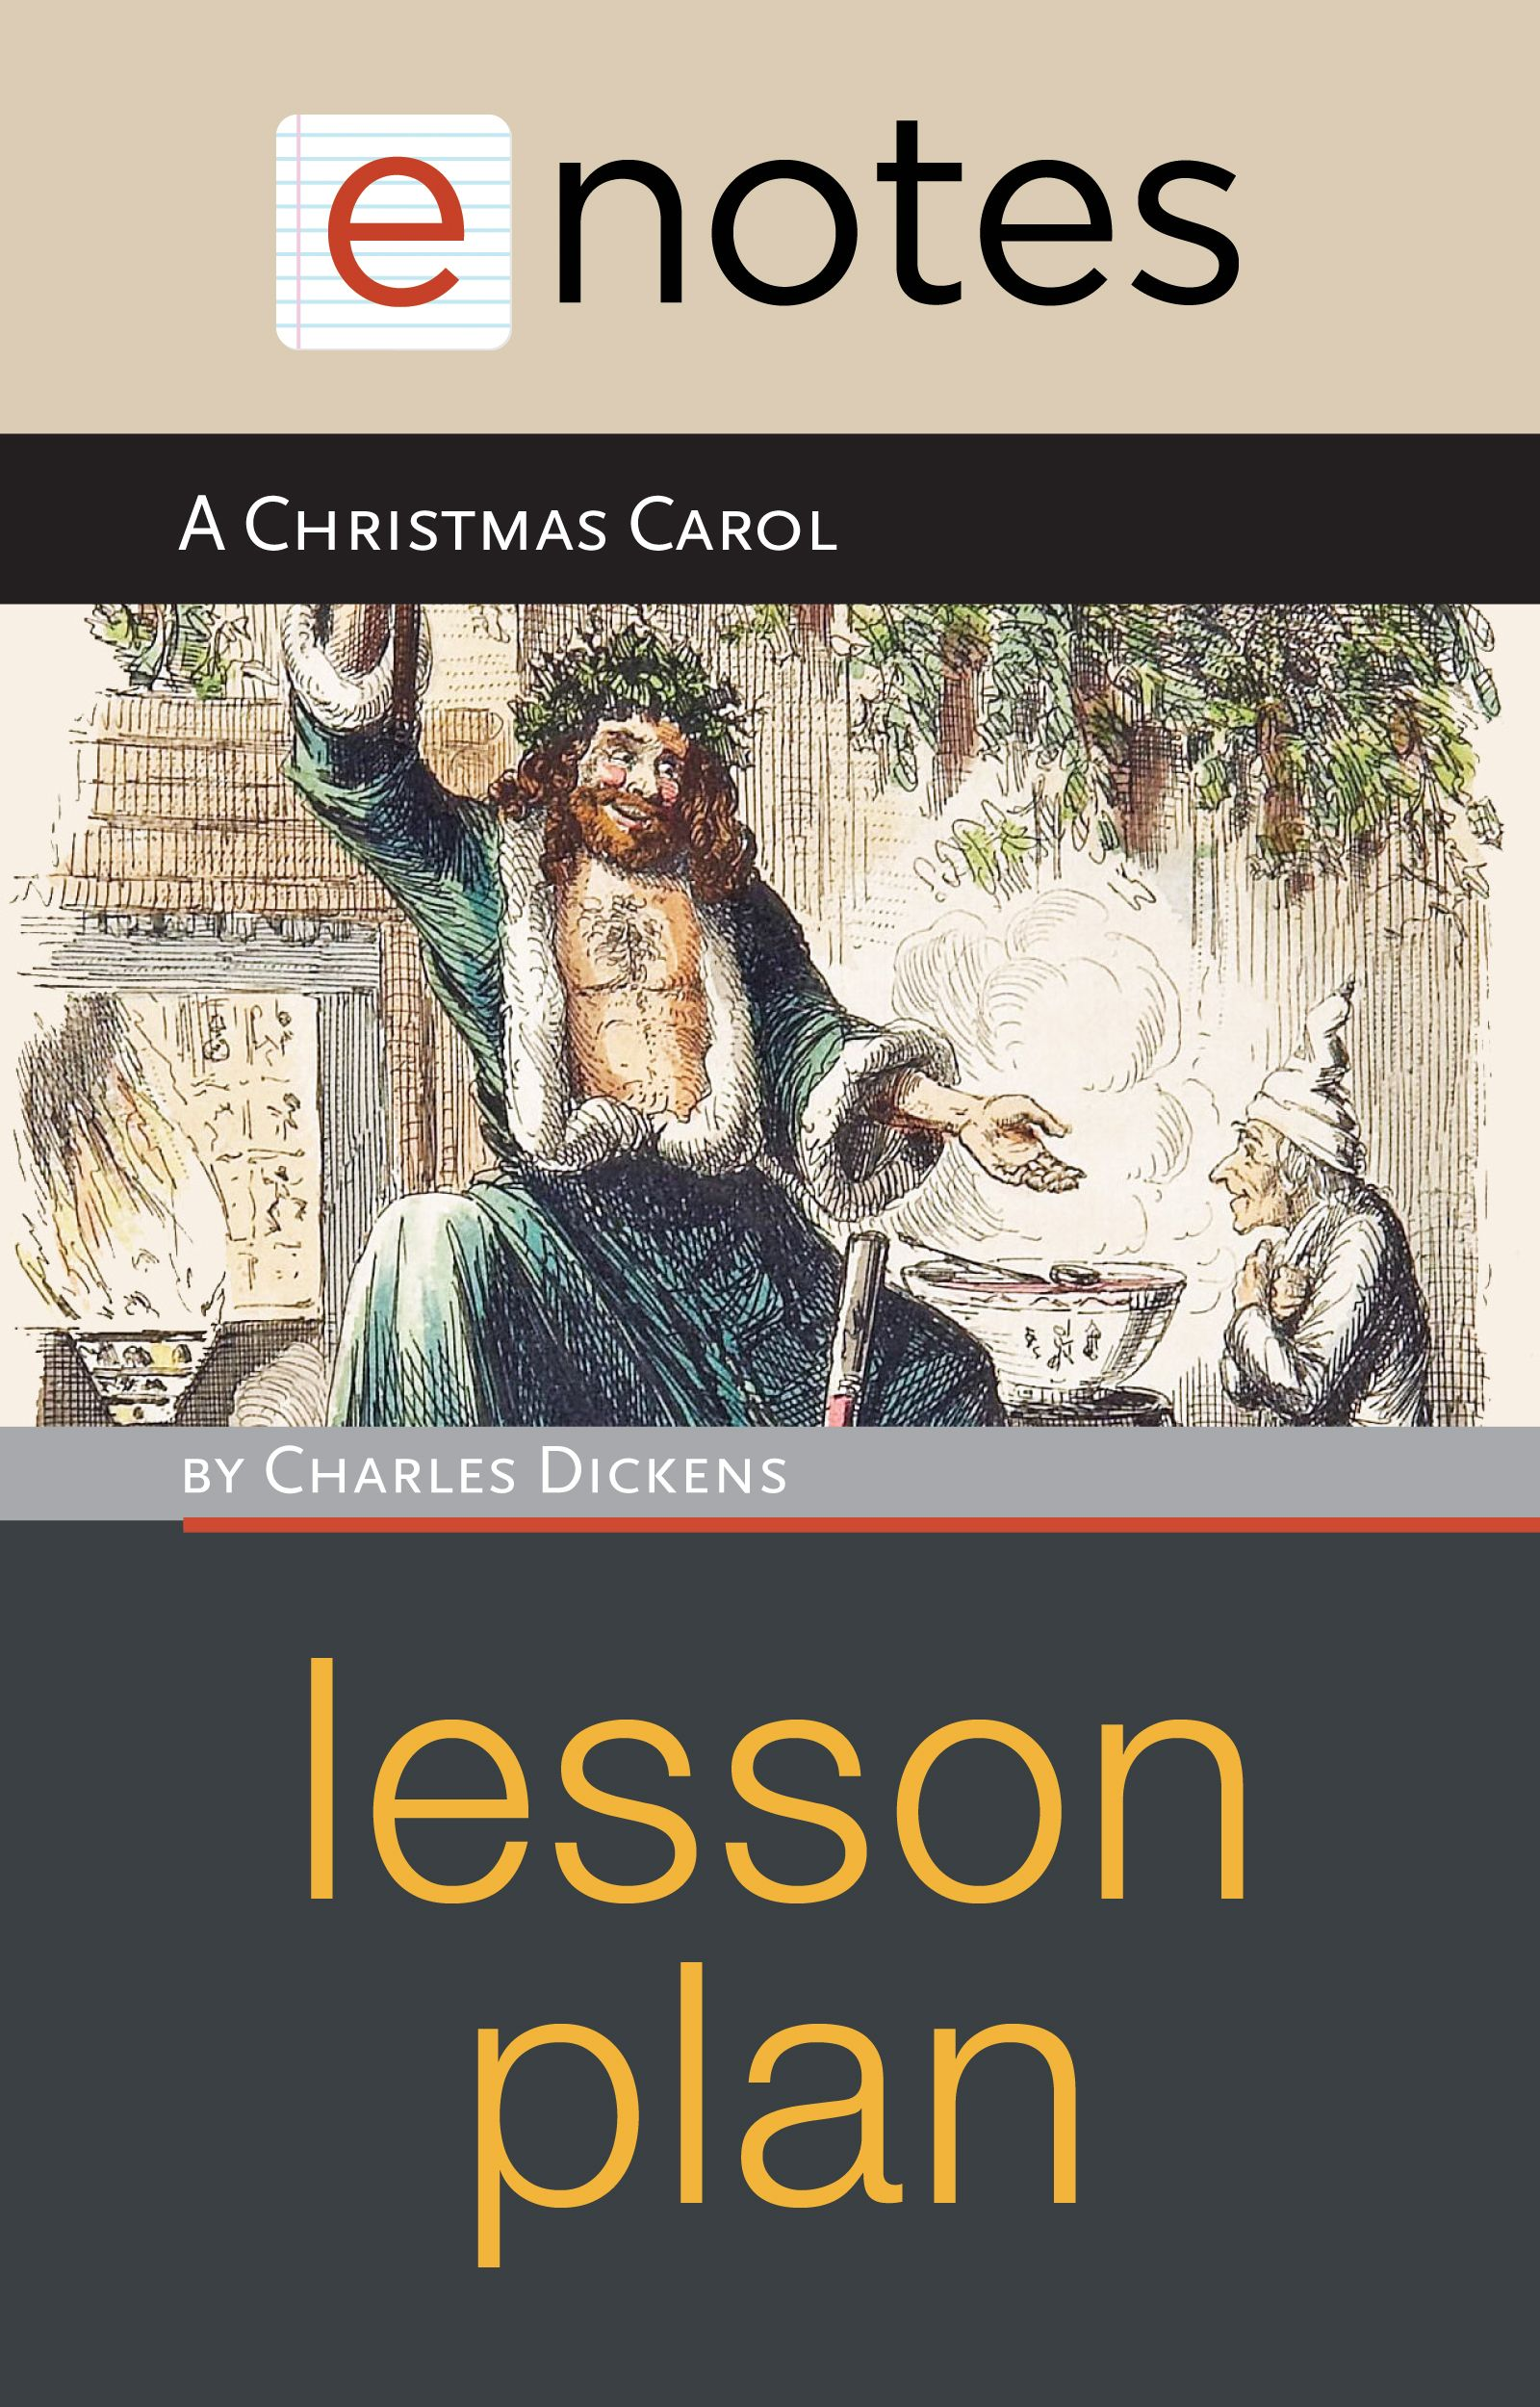 A Christmas Carol By Charles Dickens Enotes Lesson Plan Lesson